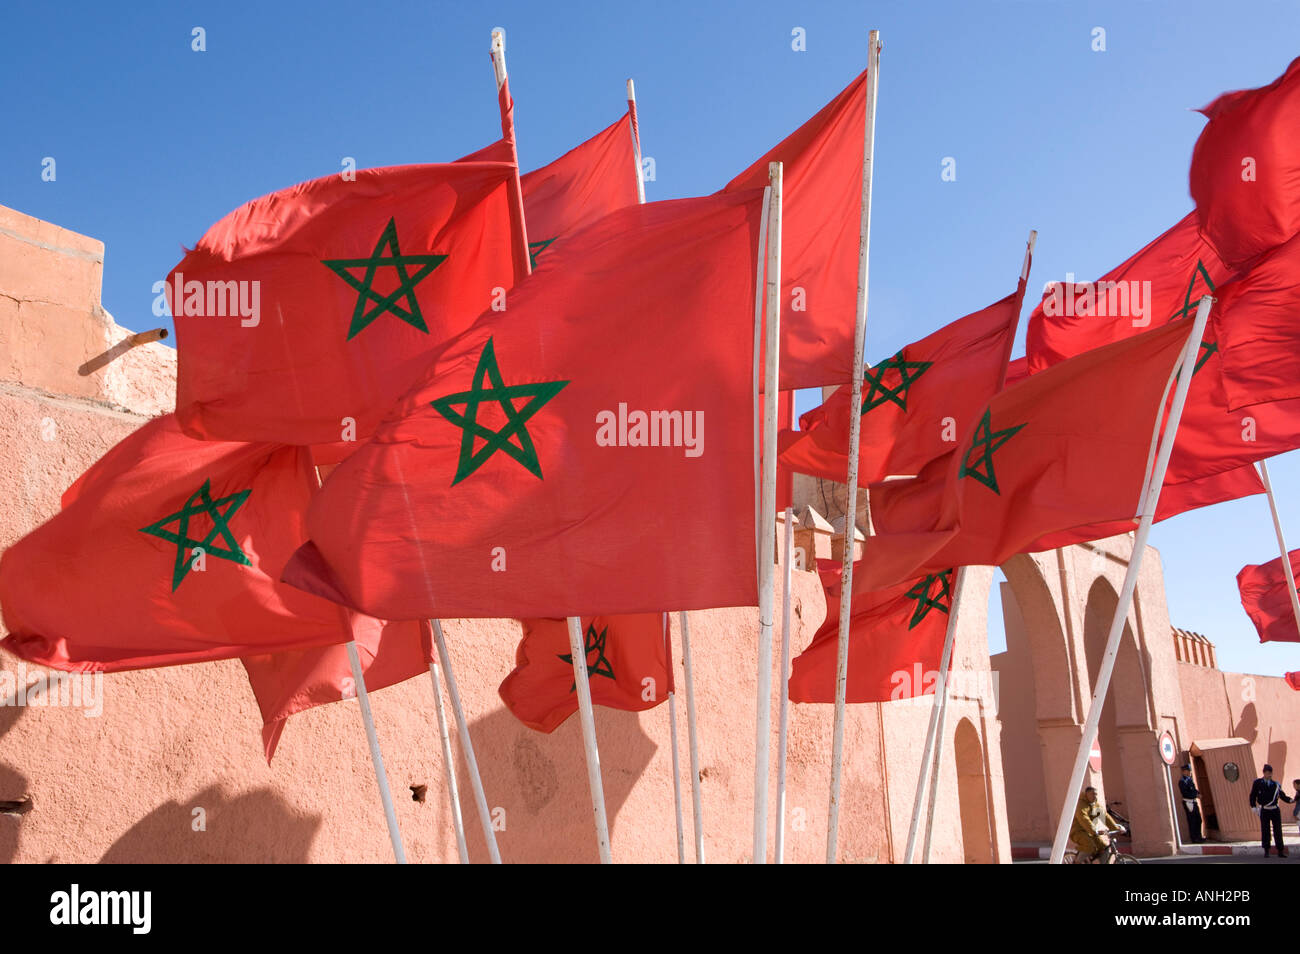 Moroccan flags flying by the city walls, Marrakesh, Morocco - Stock Image